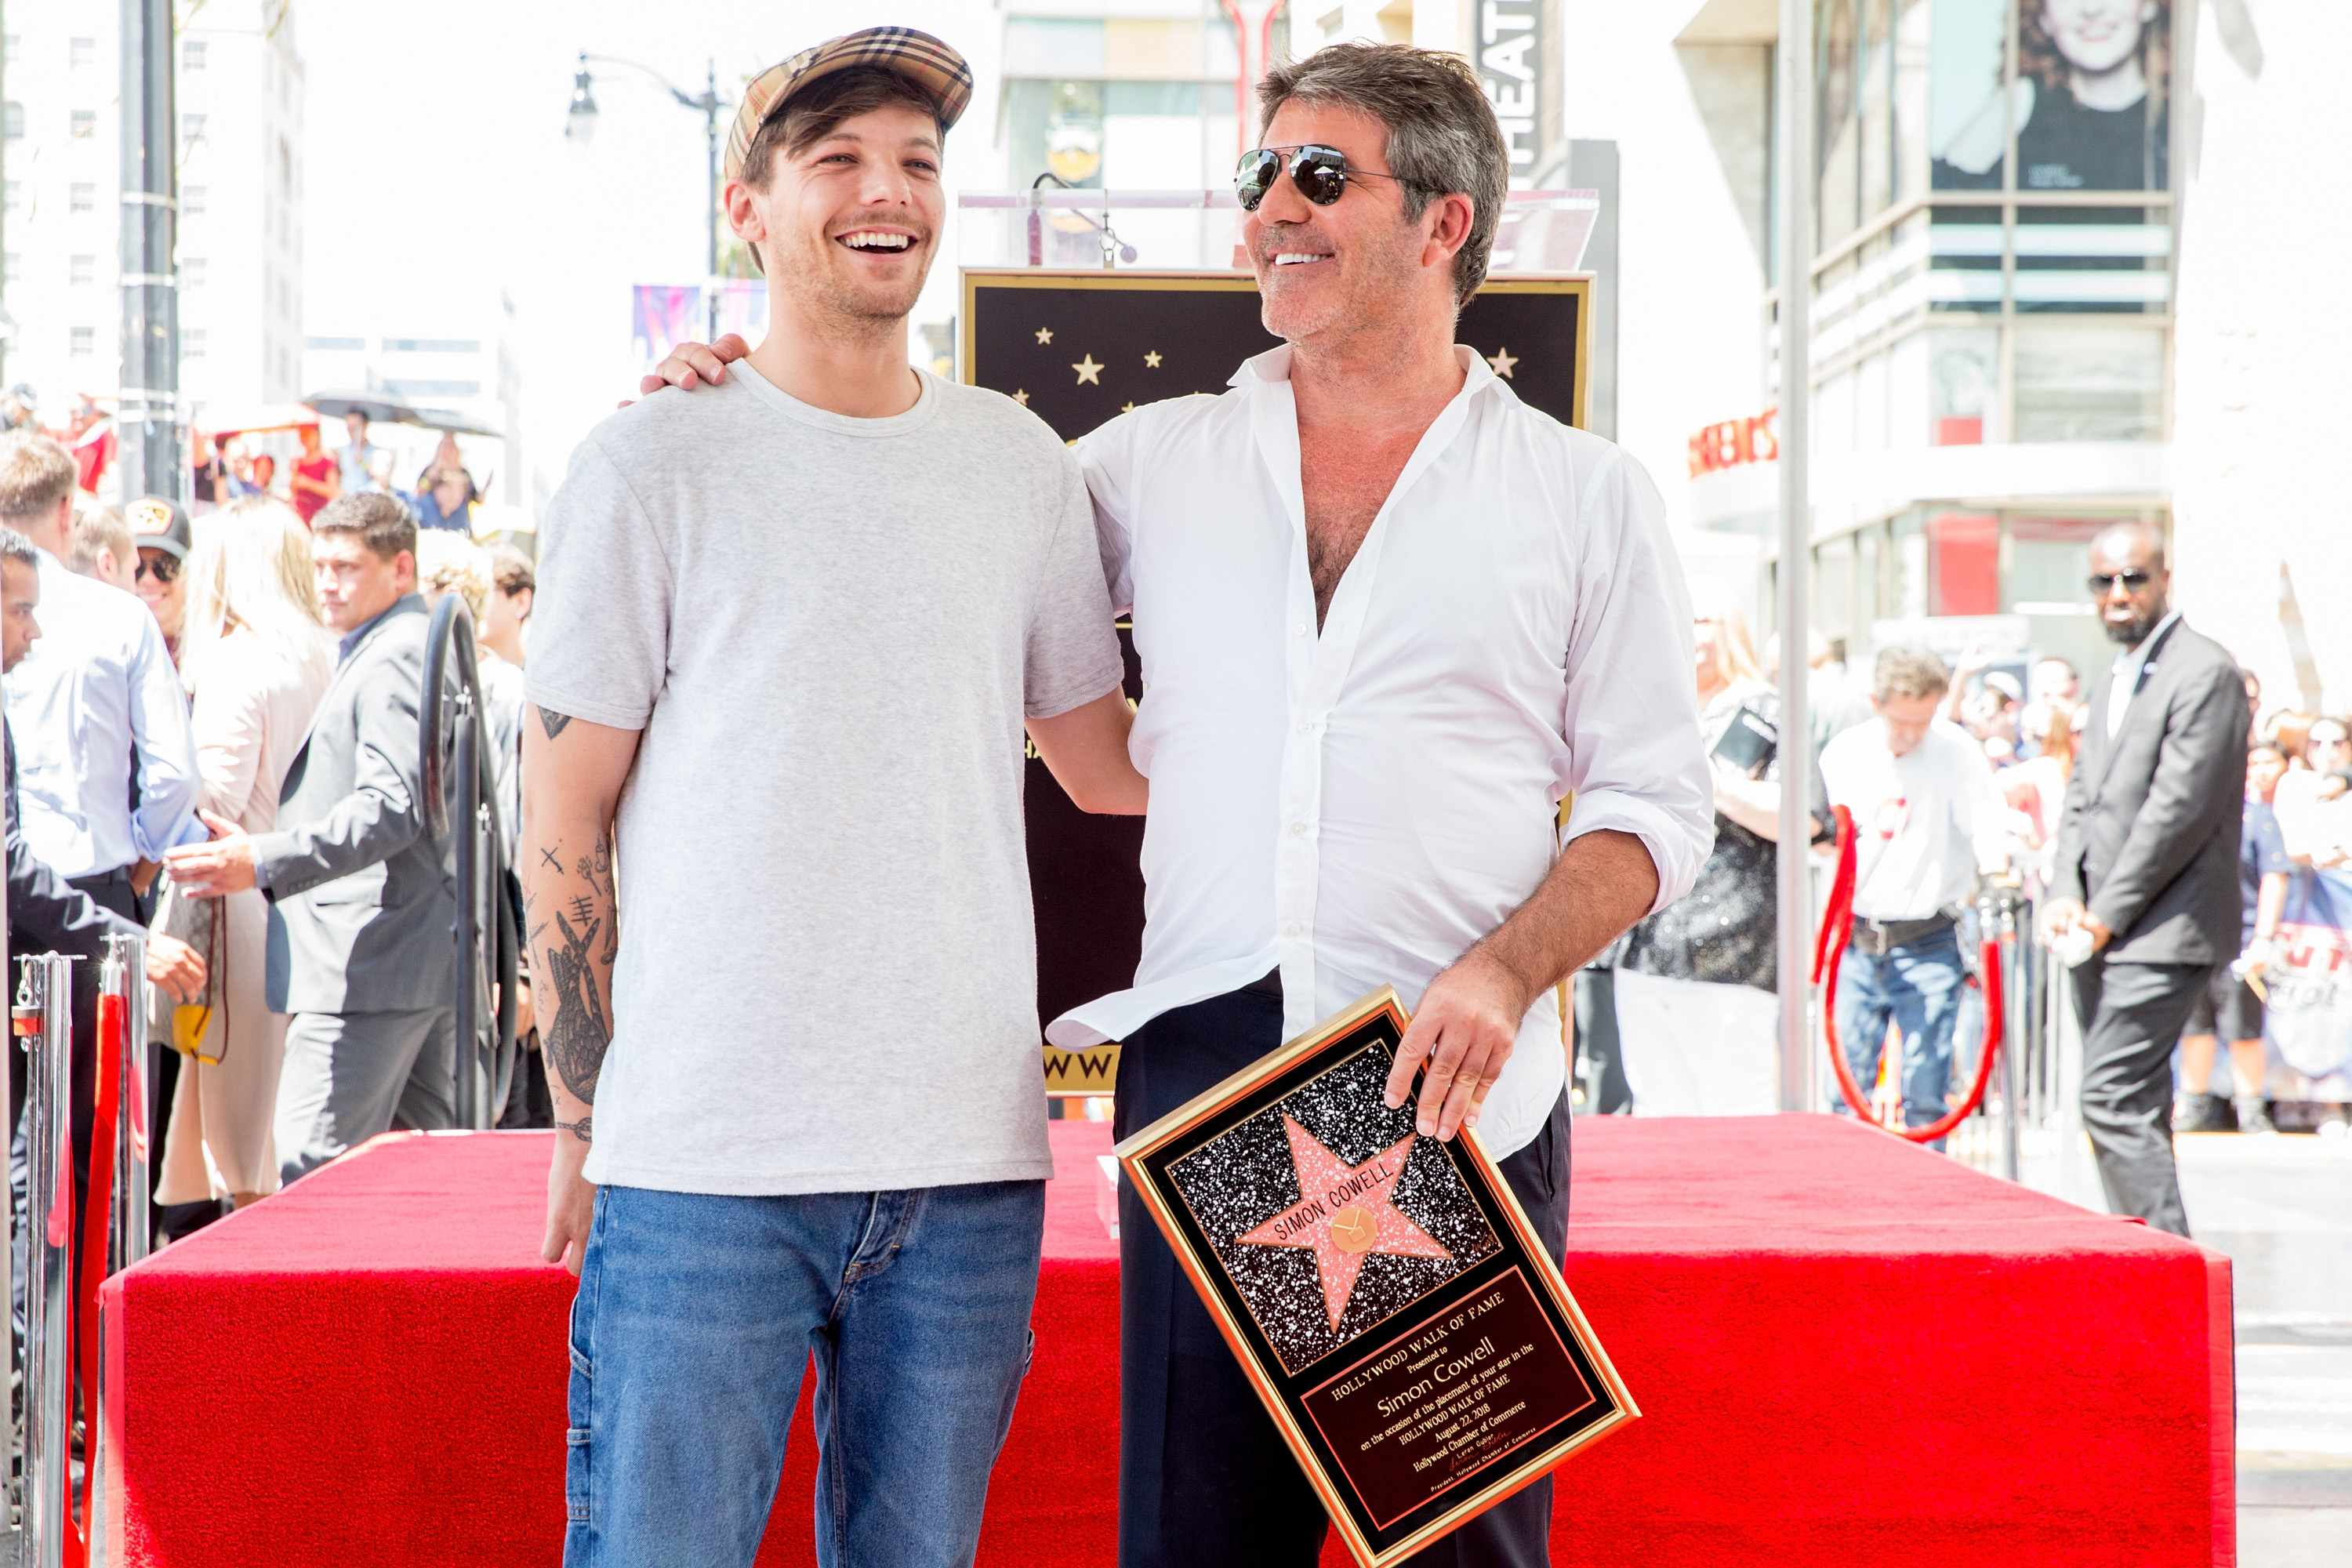 HOLLYWOOD, CA - AUGUST 22:  Louis Tomlinson (L) and Simon Cowell attend a ceremony honoring Cowell with a star on the Hollywood Walk of Fame on August 22, 2018 in Hollywood, California.  (Photo by Rich Fury/Getty Images) TL